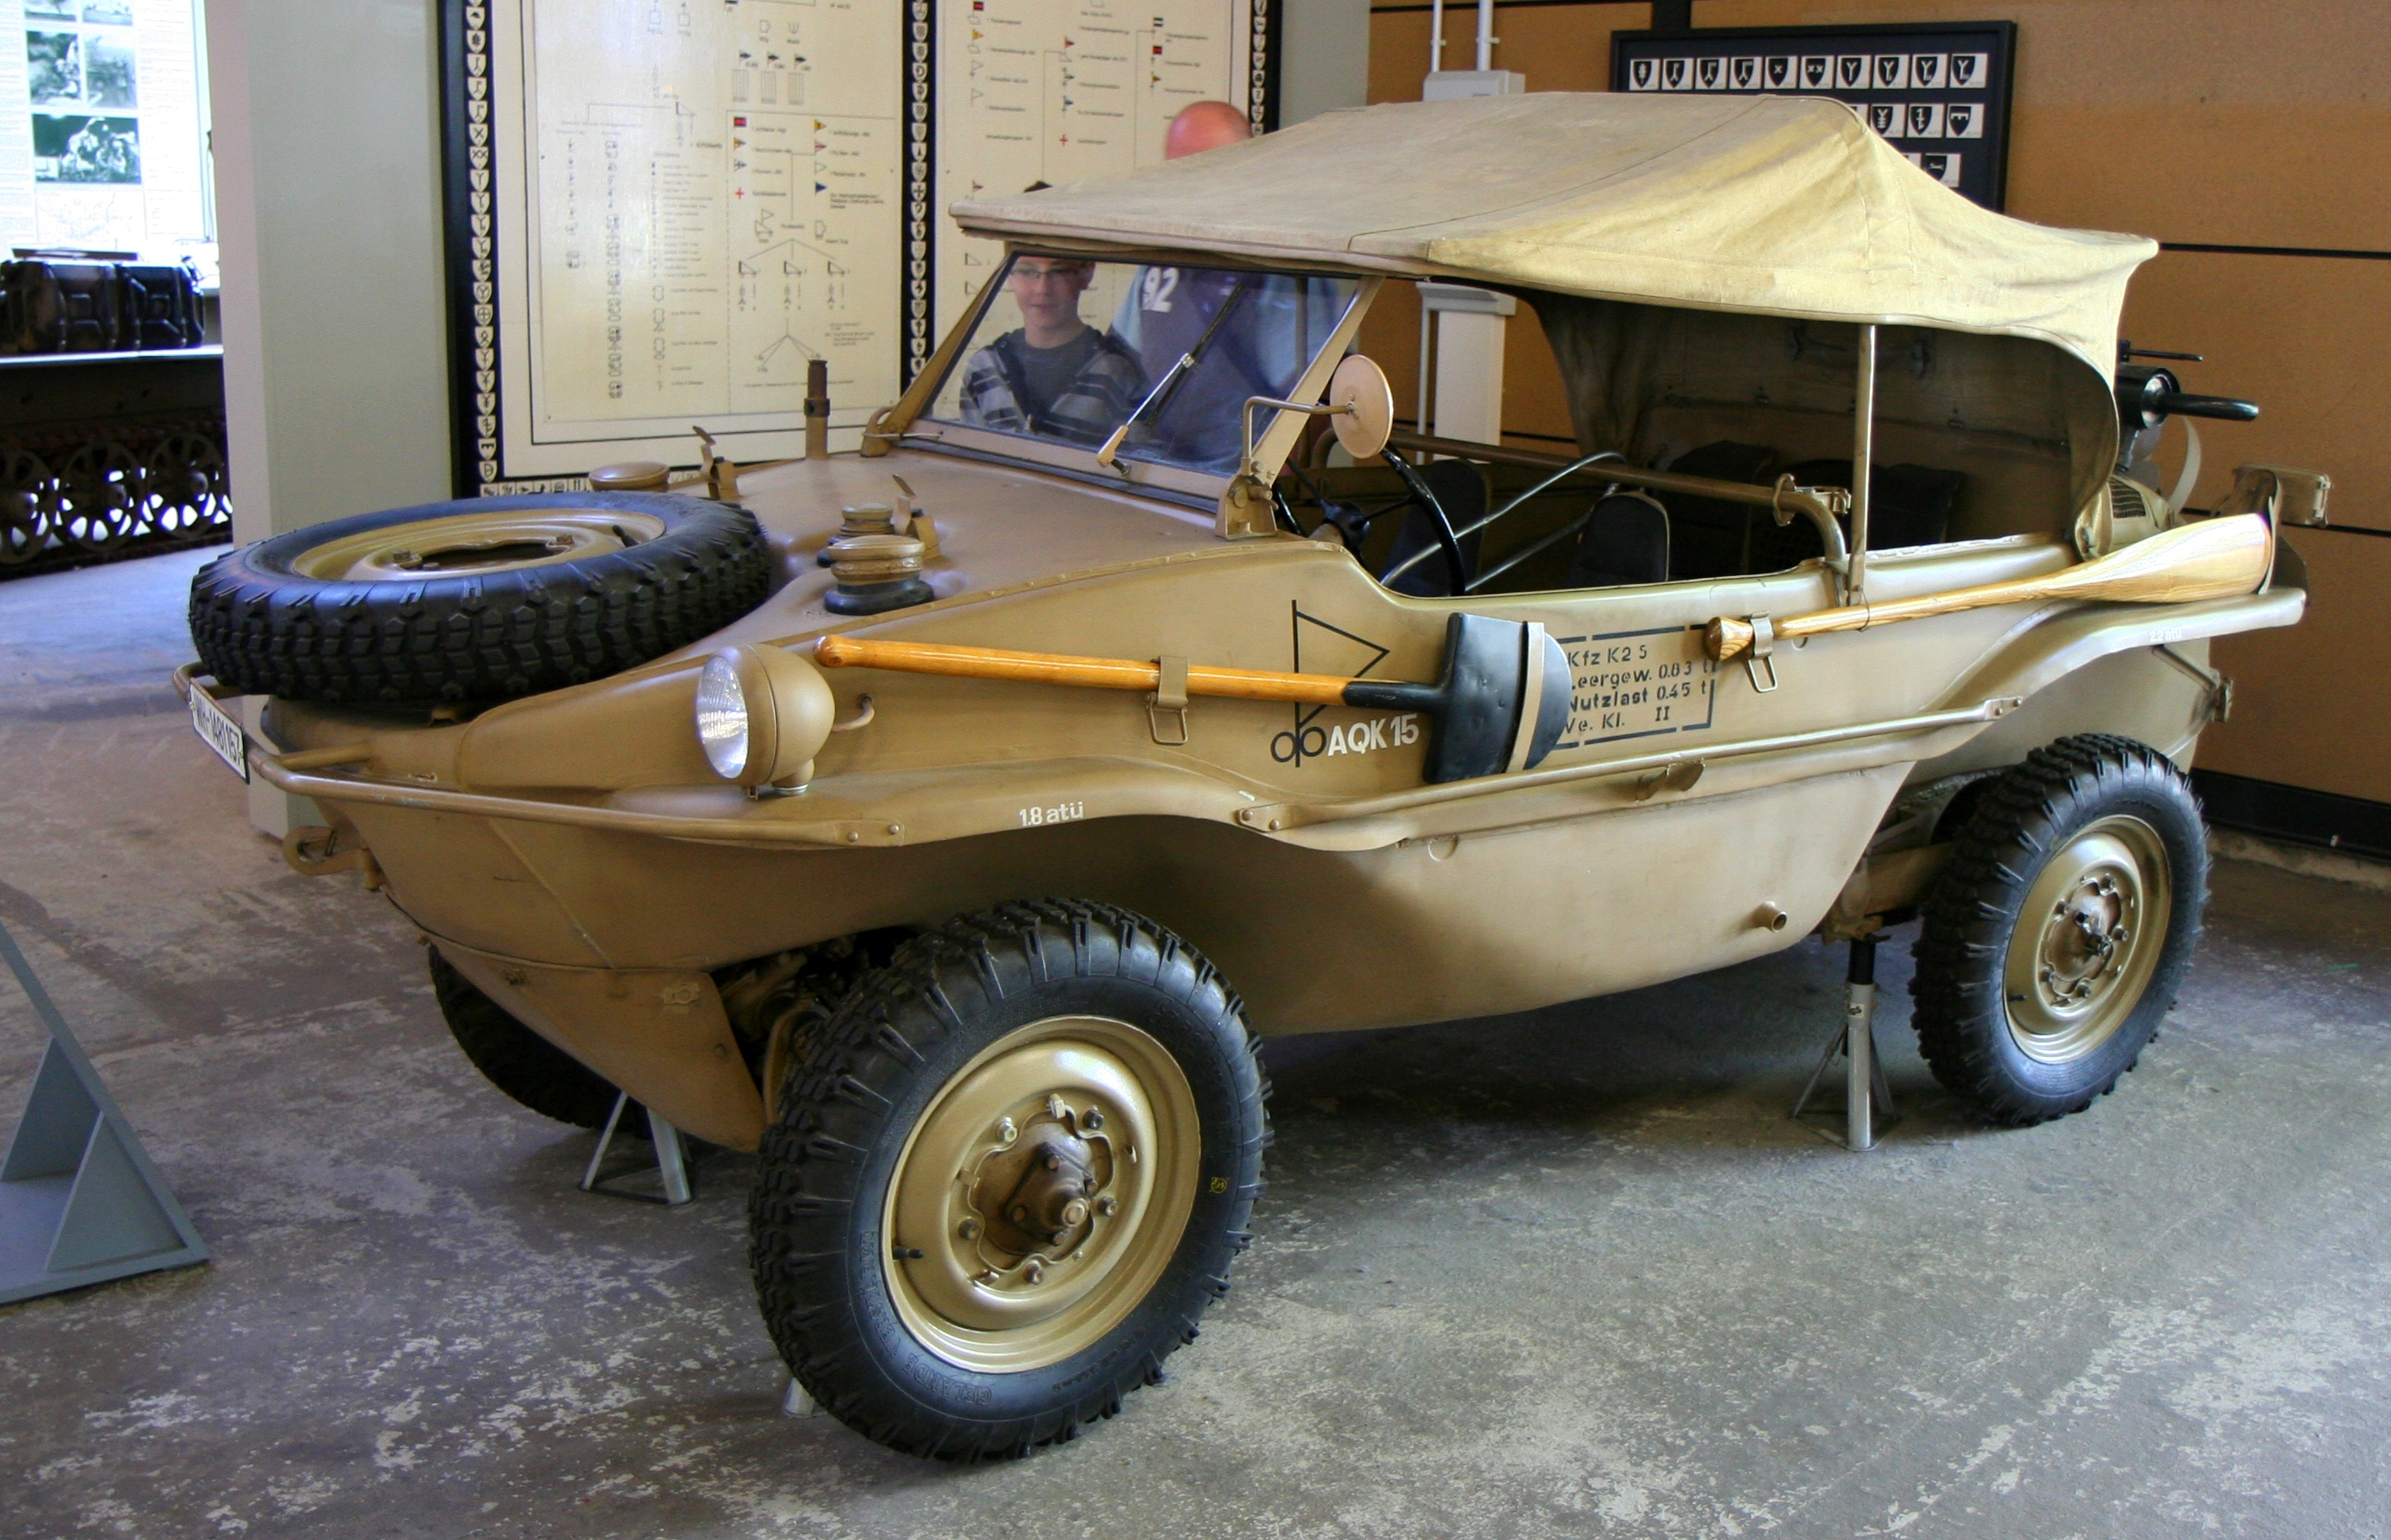 Storm The Beach In A 1940s Vw Schwimmwagen 95 Octane